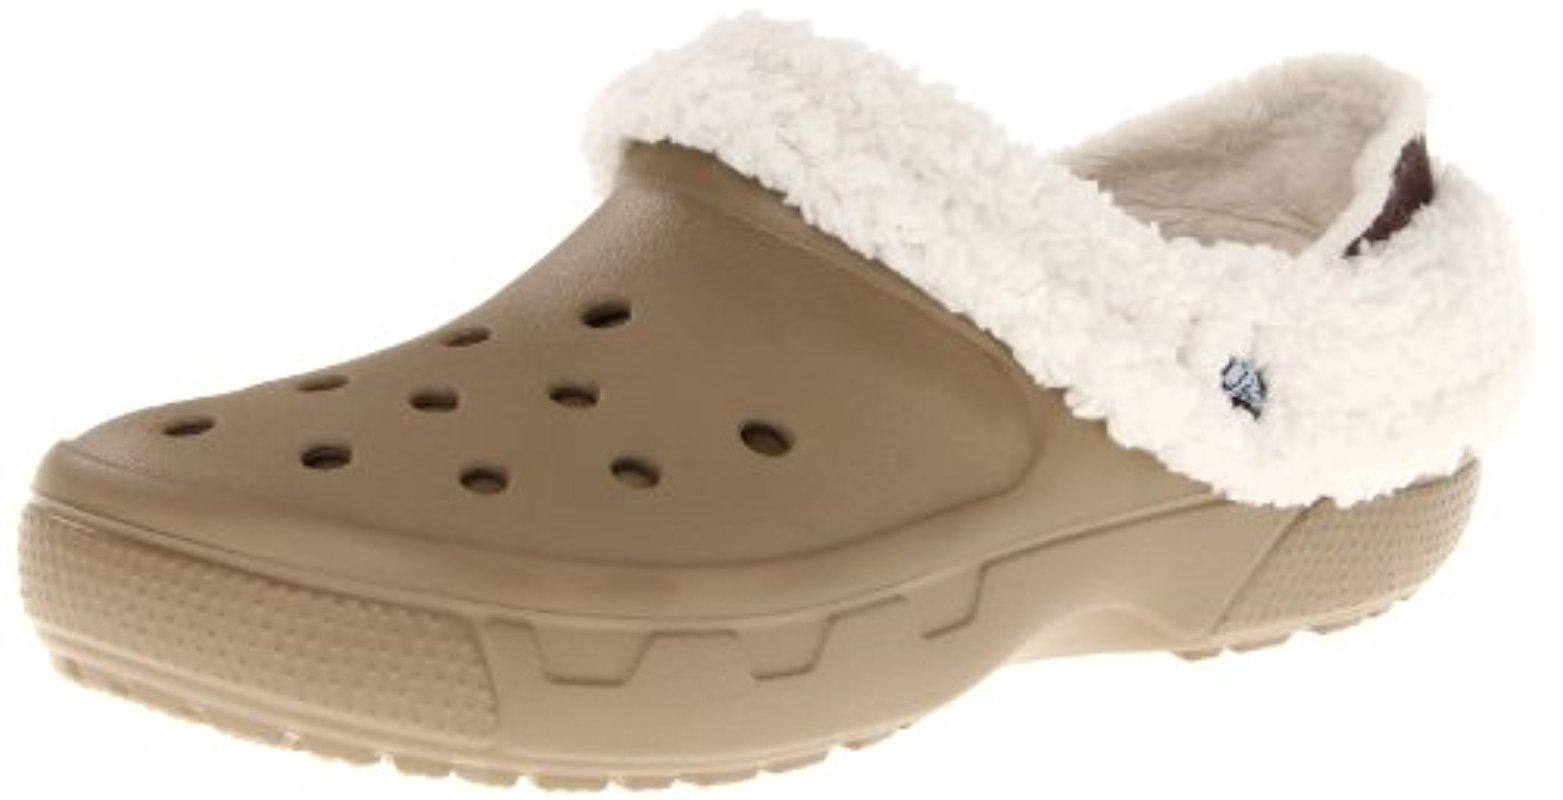 7dc54960a Lyst - Crocs™ Unisex Mammoth Evo Lined Clog in Natural for Men